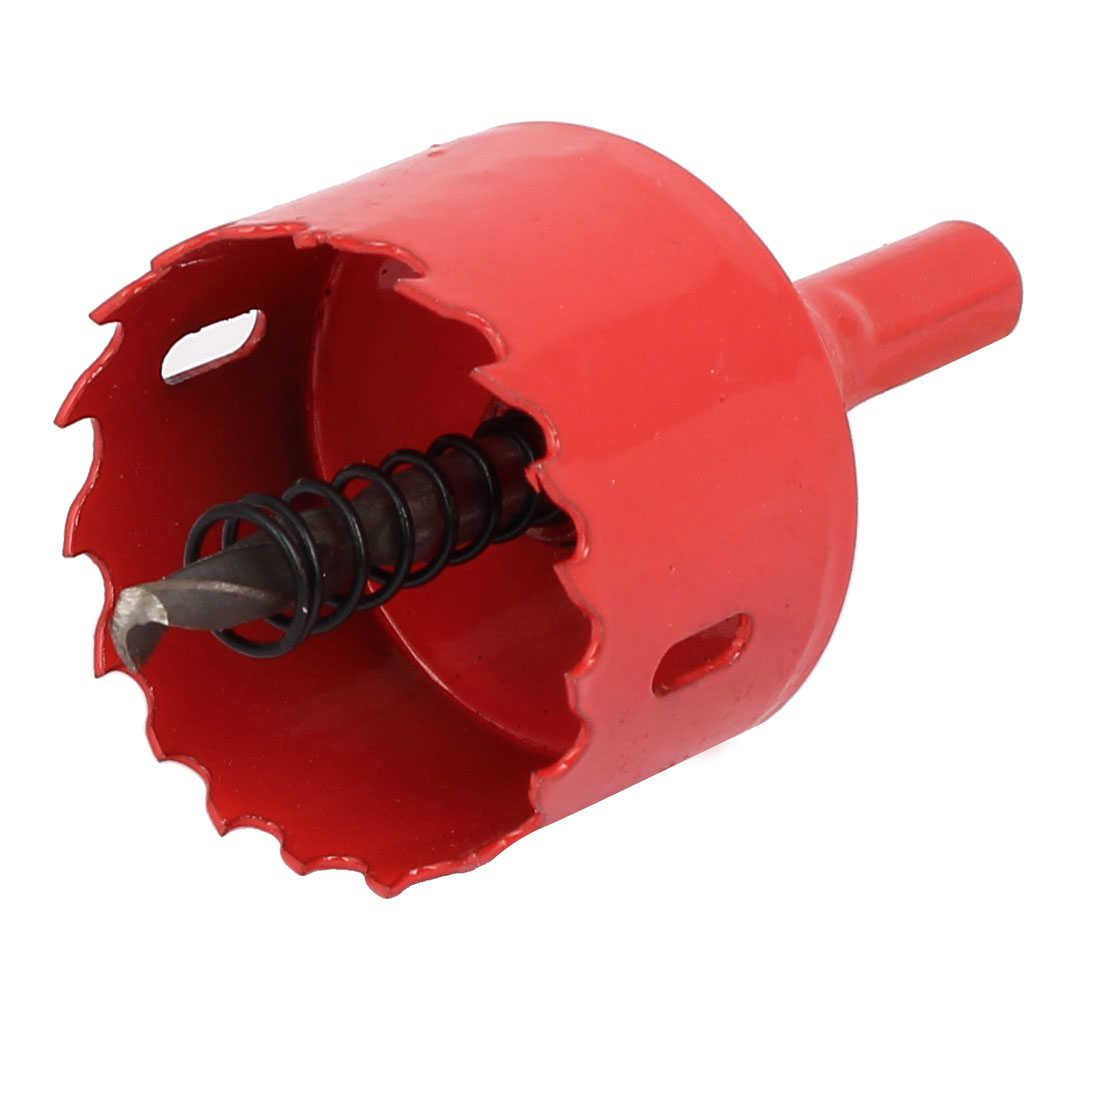 45mm Cutting Dia M42 HSS Spring Loaded Bi-Metal Hole Saw Drilling Tool Red